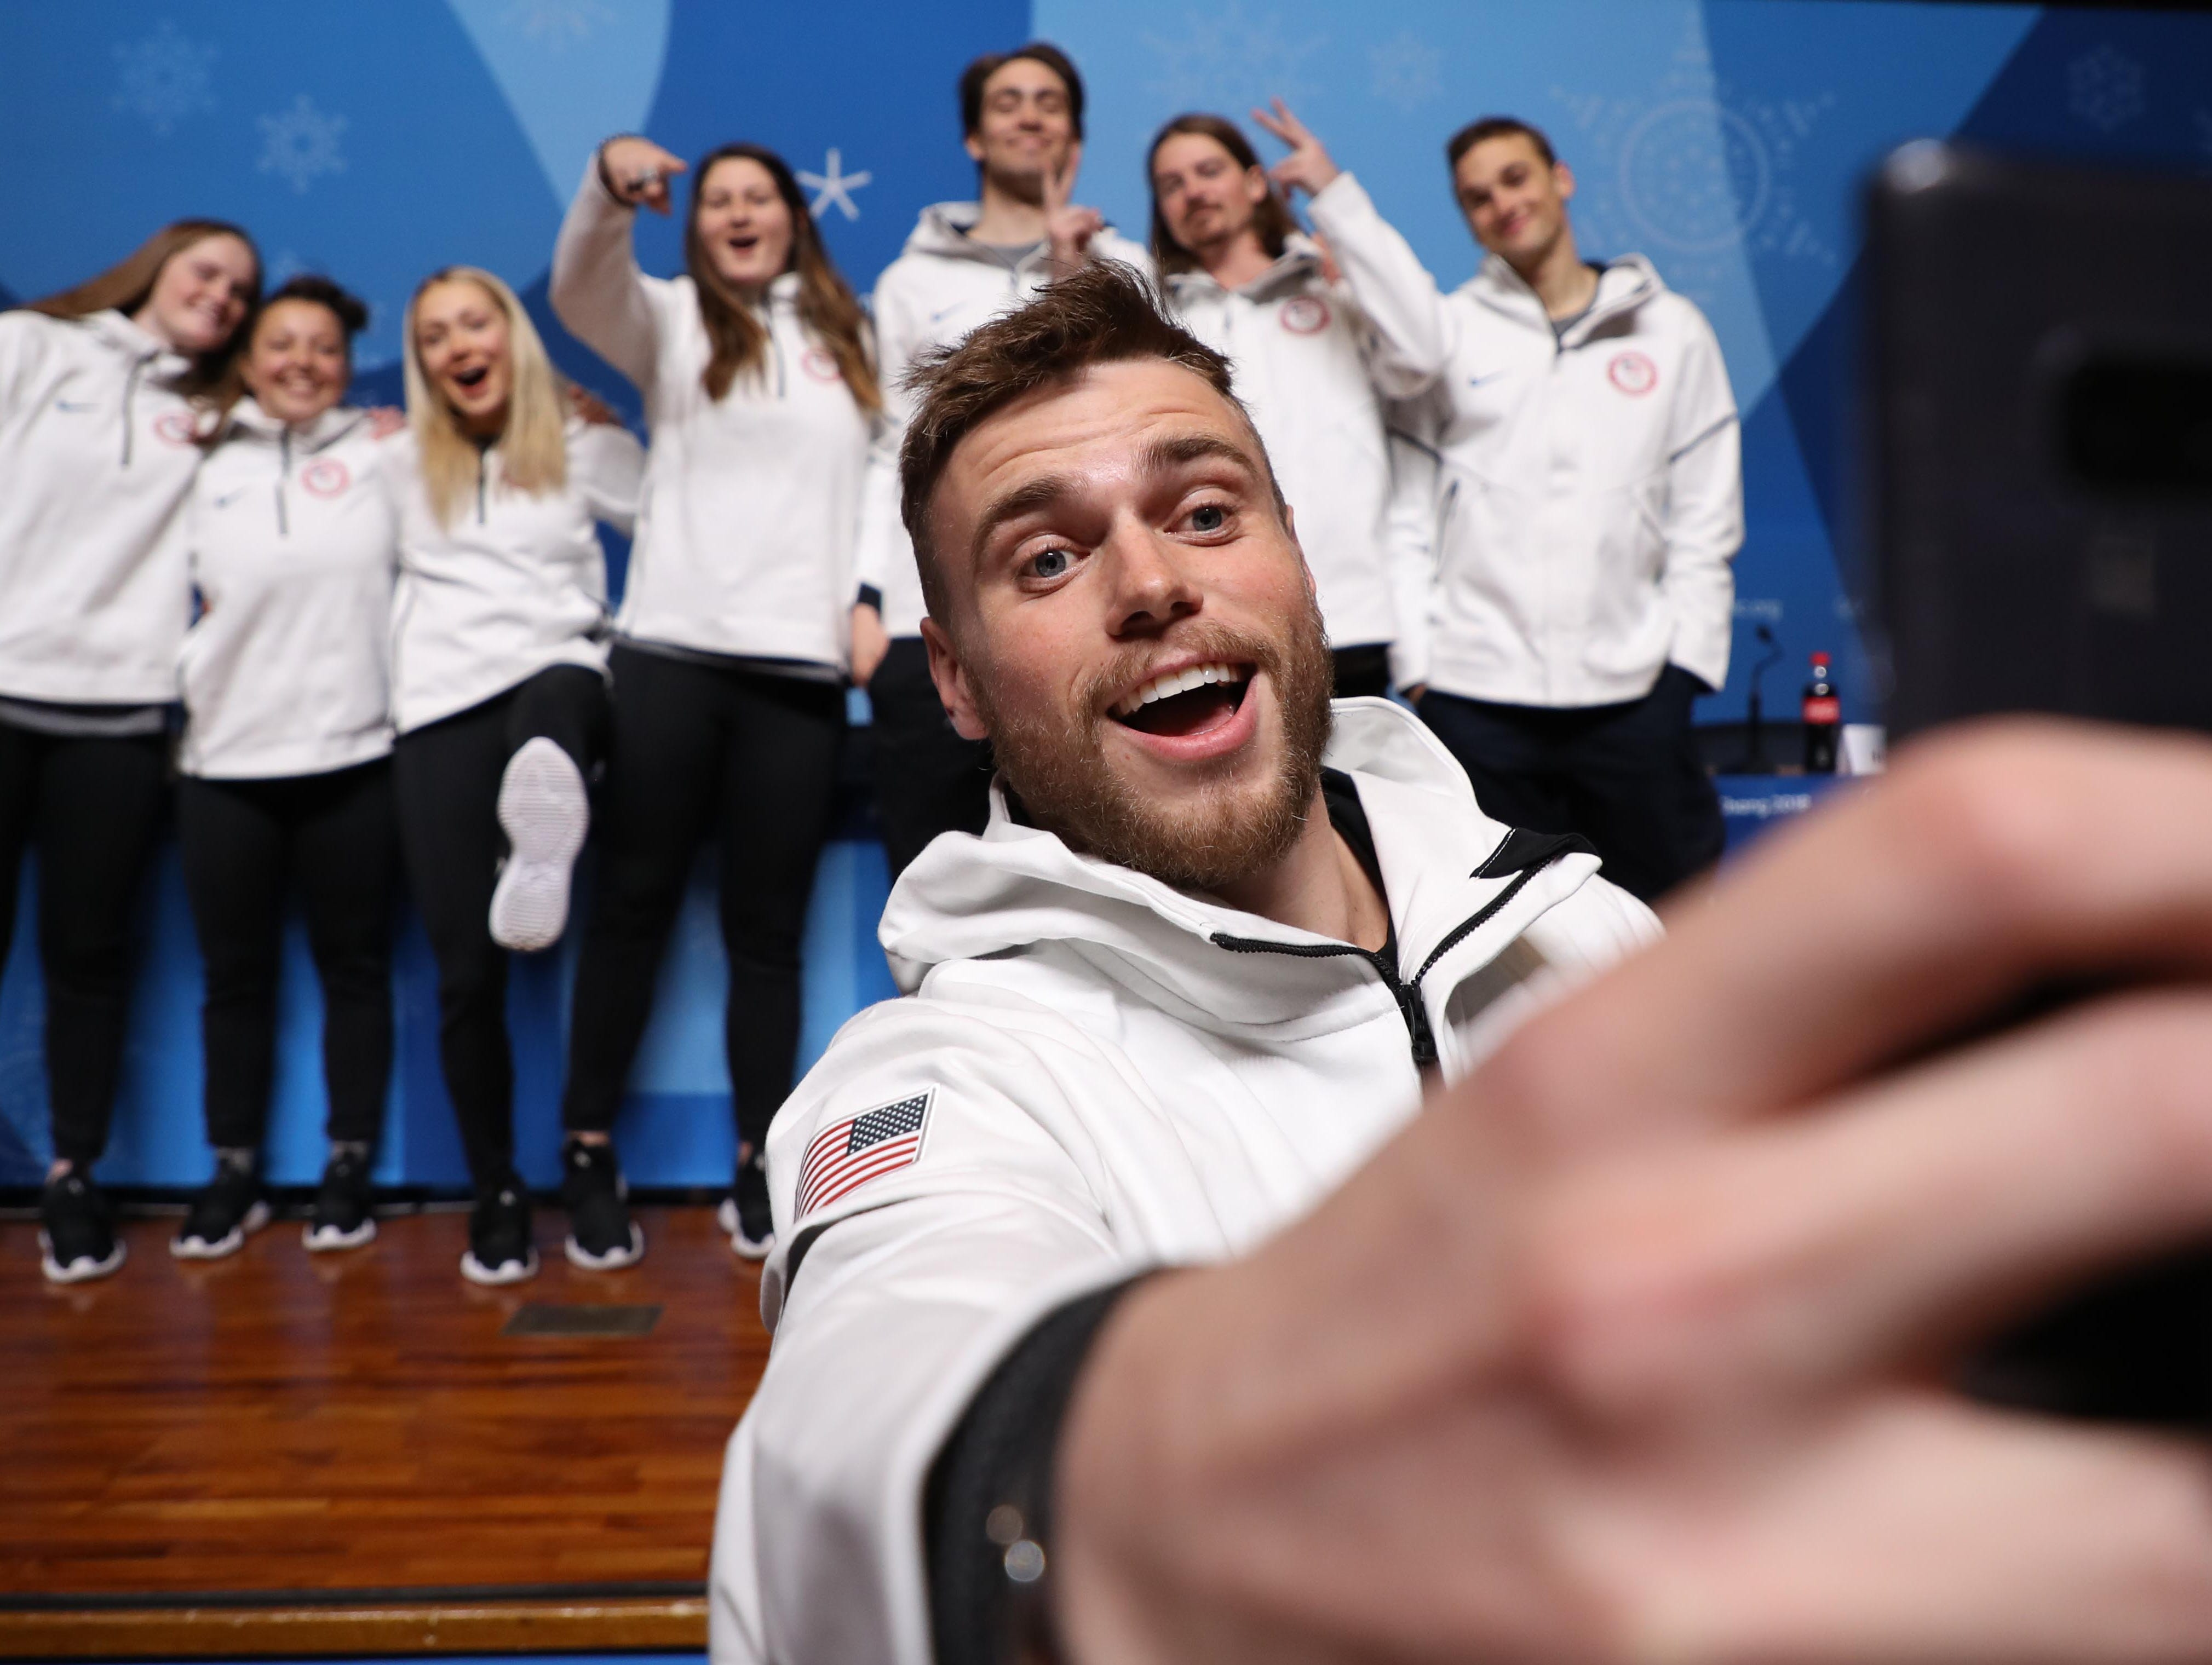 Feb. 11: Gus Kenworthy takes a selfie with his teammates during the slopestyle skiing press conference at the Pyeongchang Winter Games.